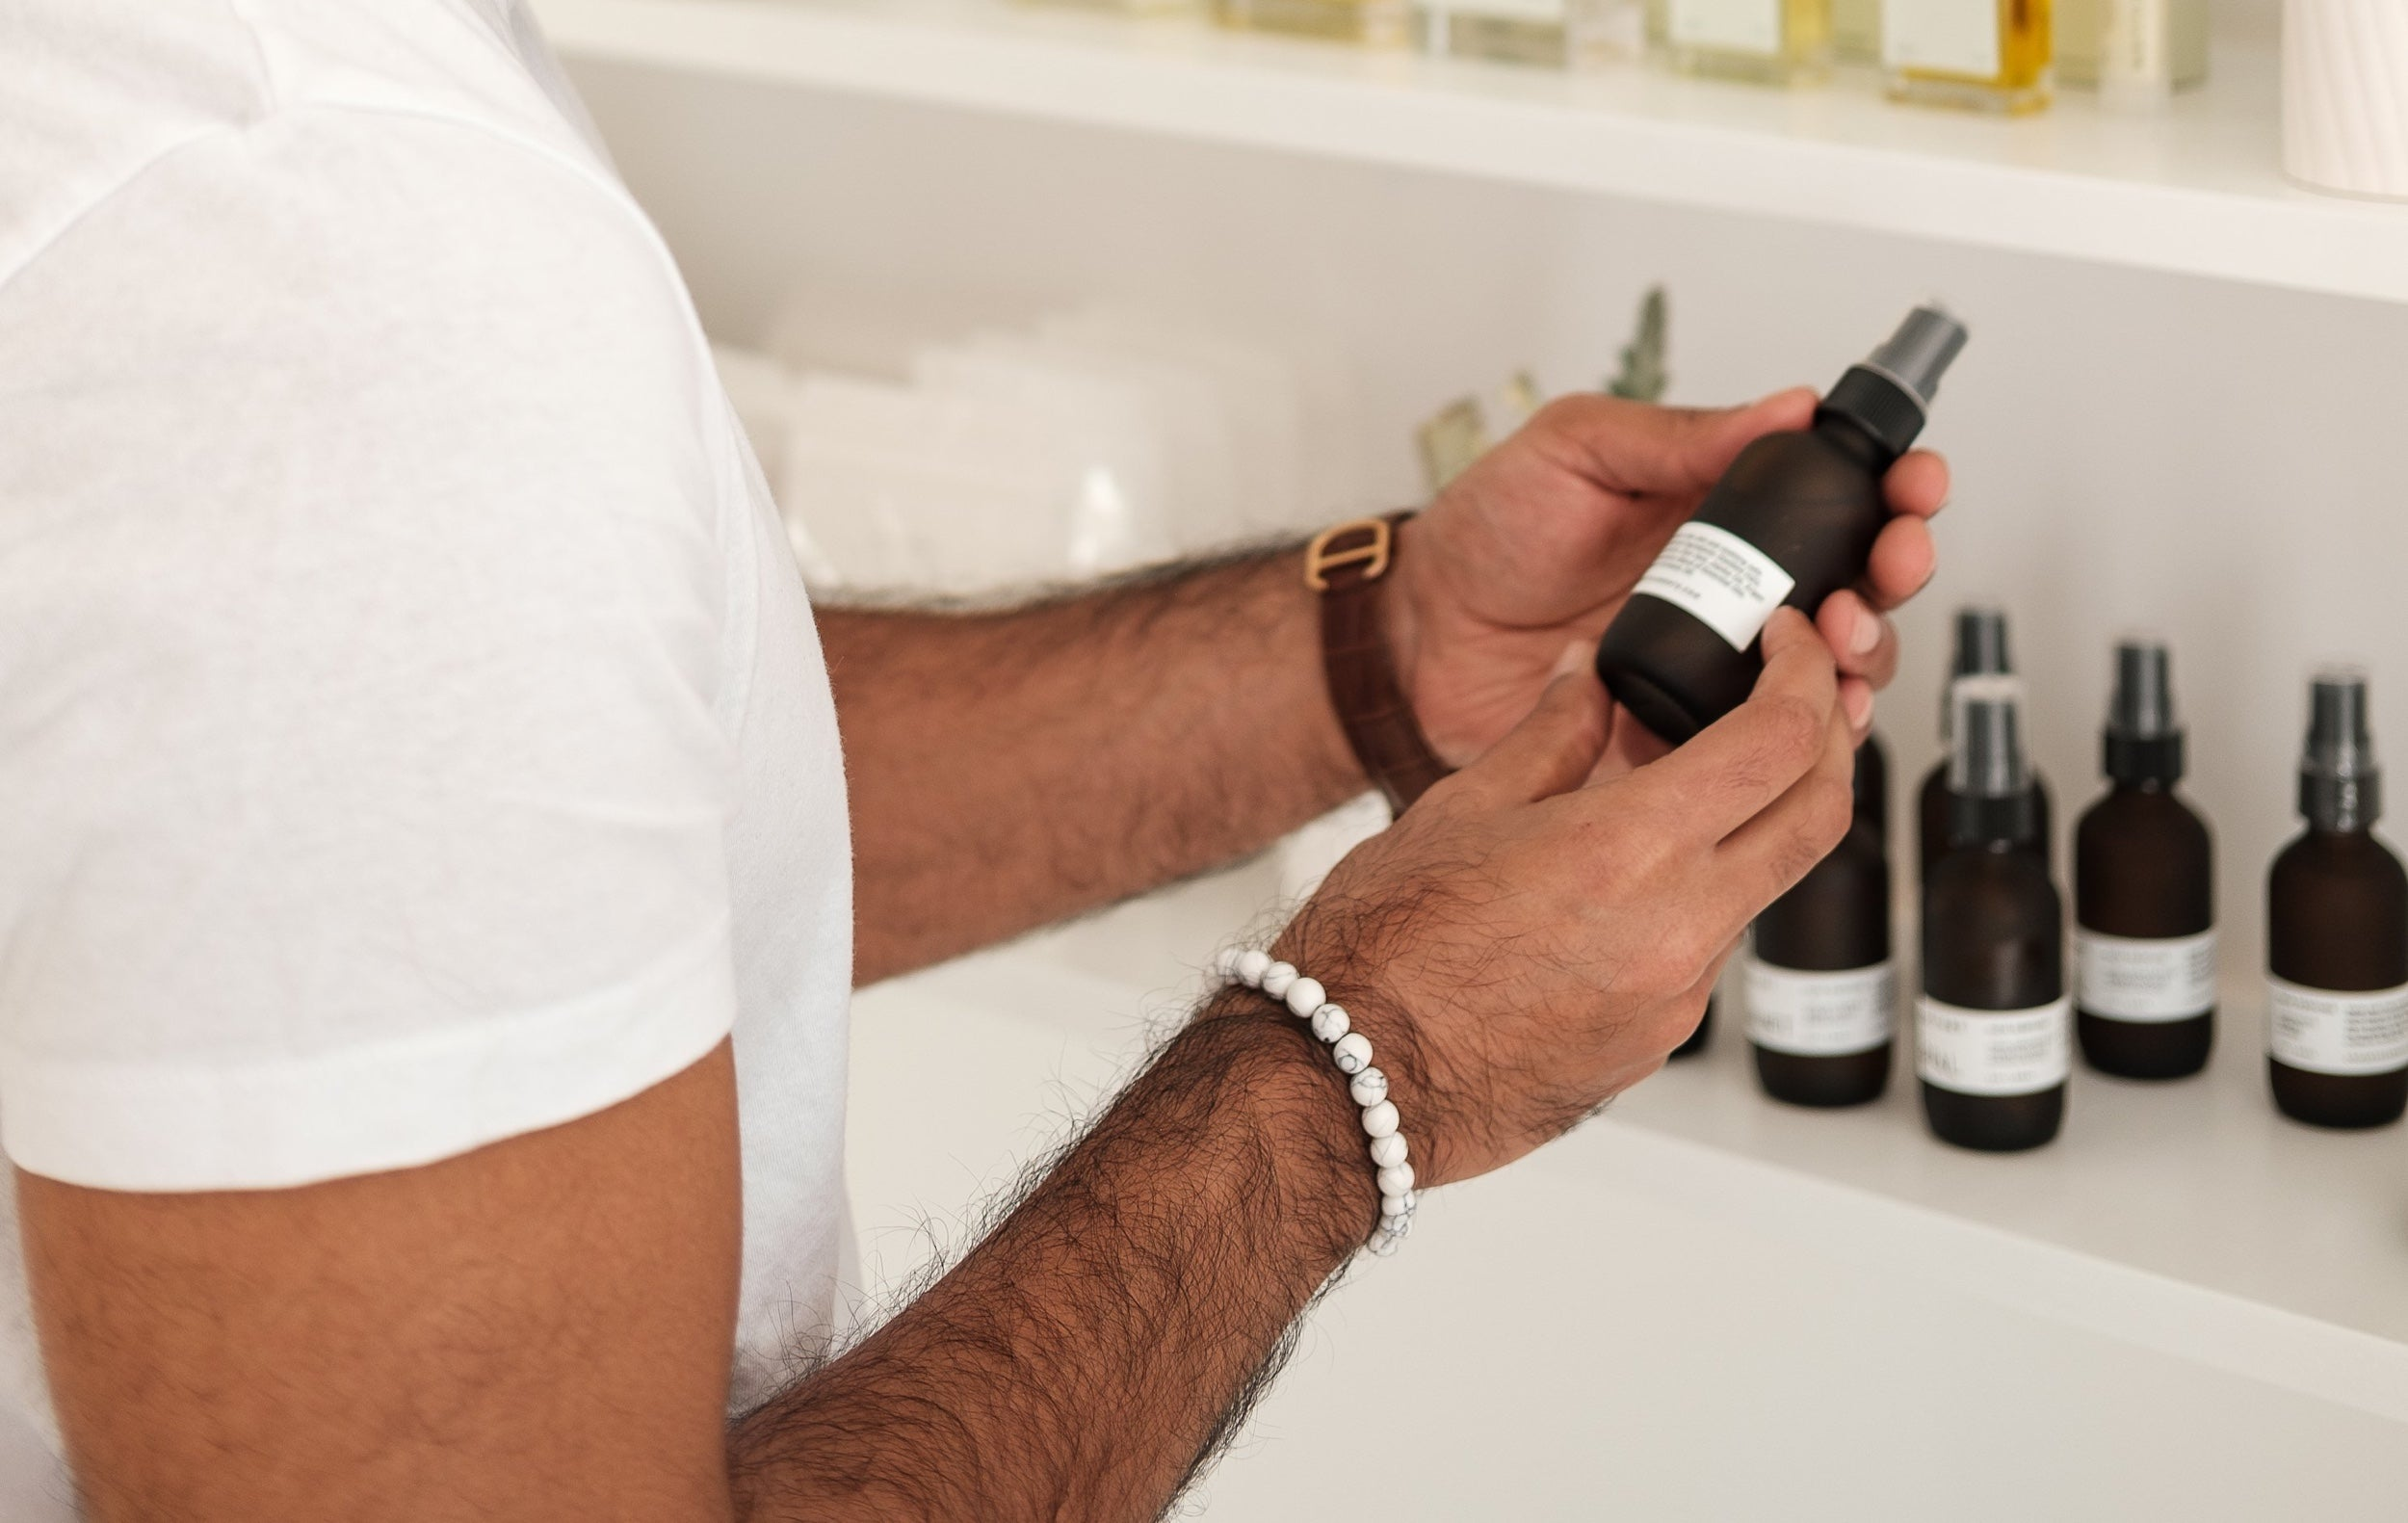 A person inspects the label of a skincare product on a shelf